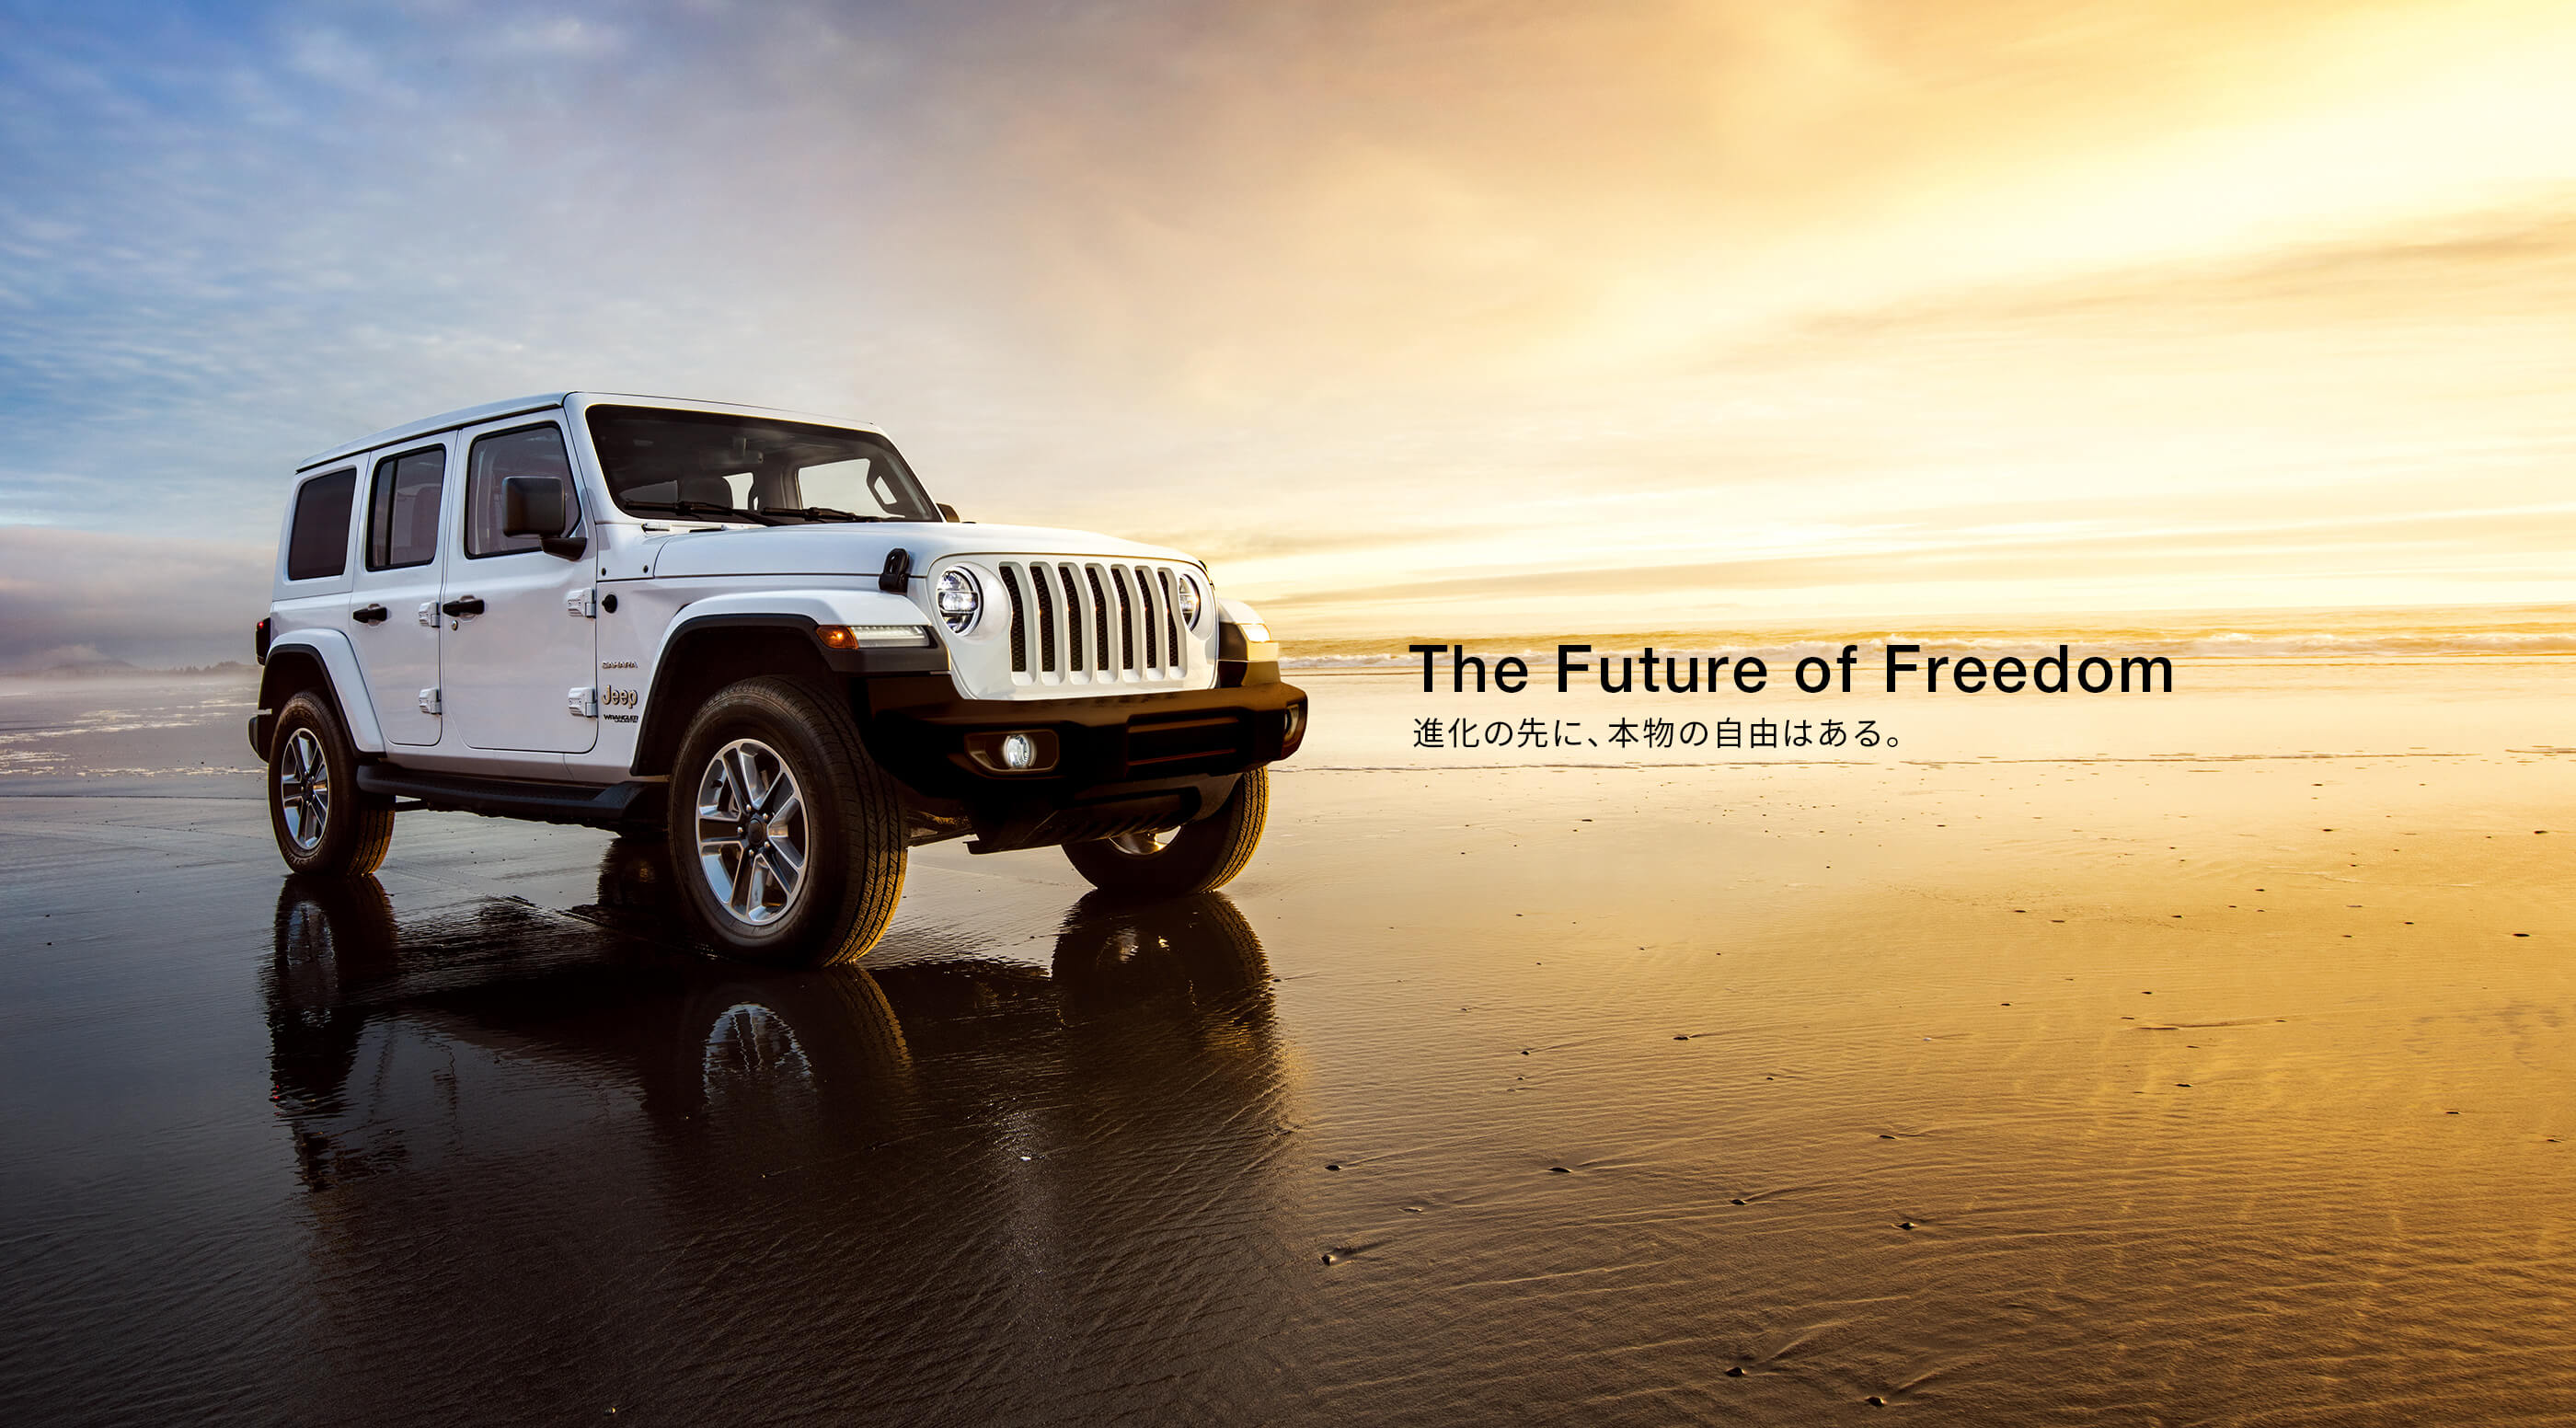 The Future of Freedom キャンペーン